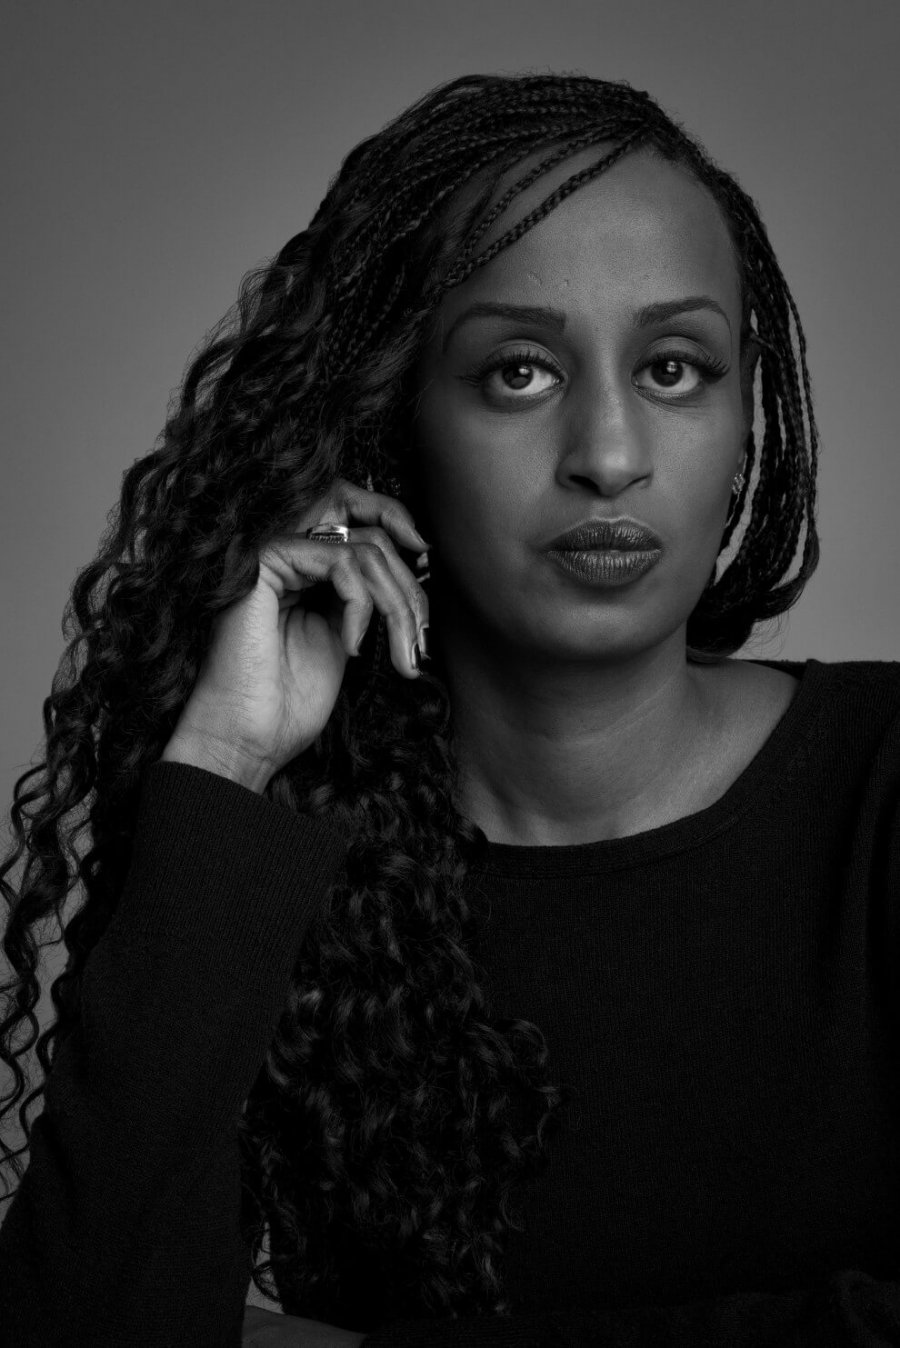 leyla hussein on FGM